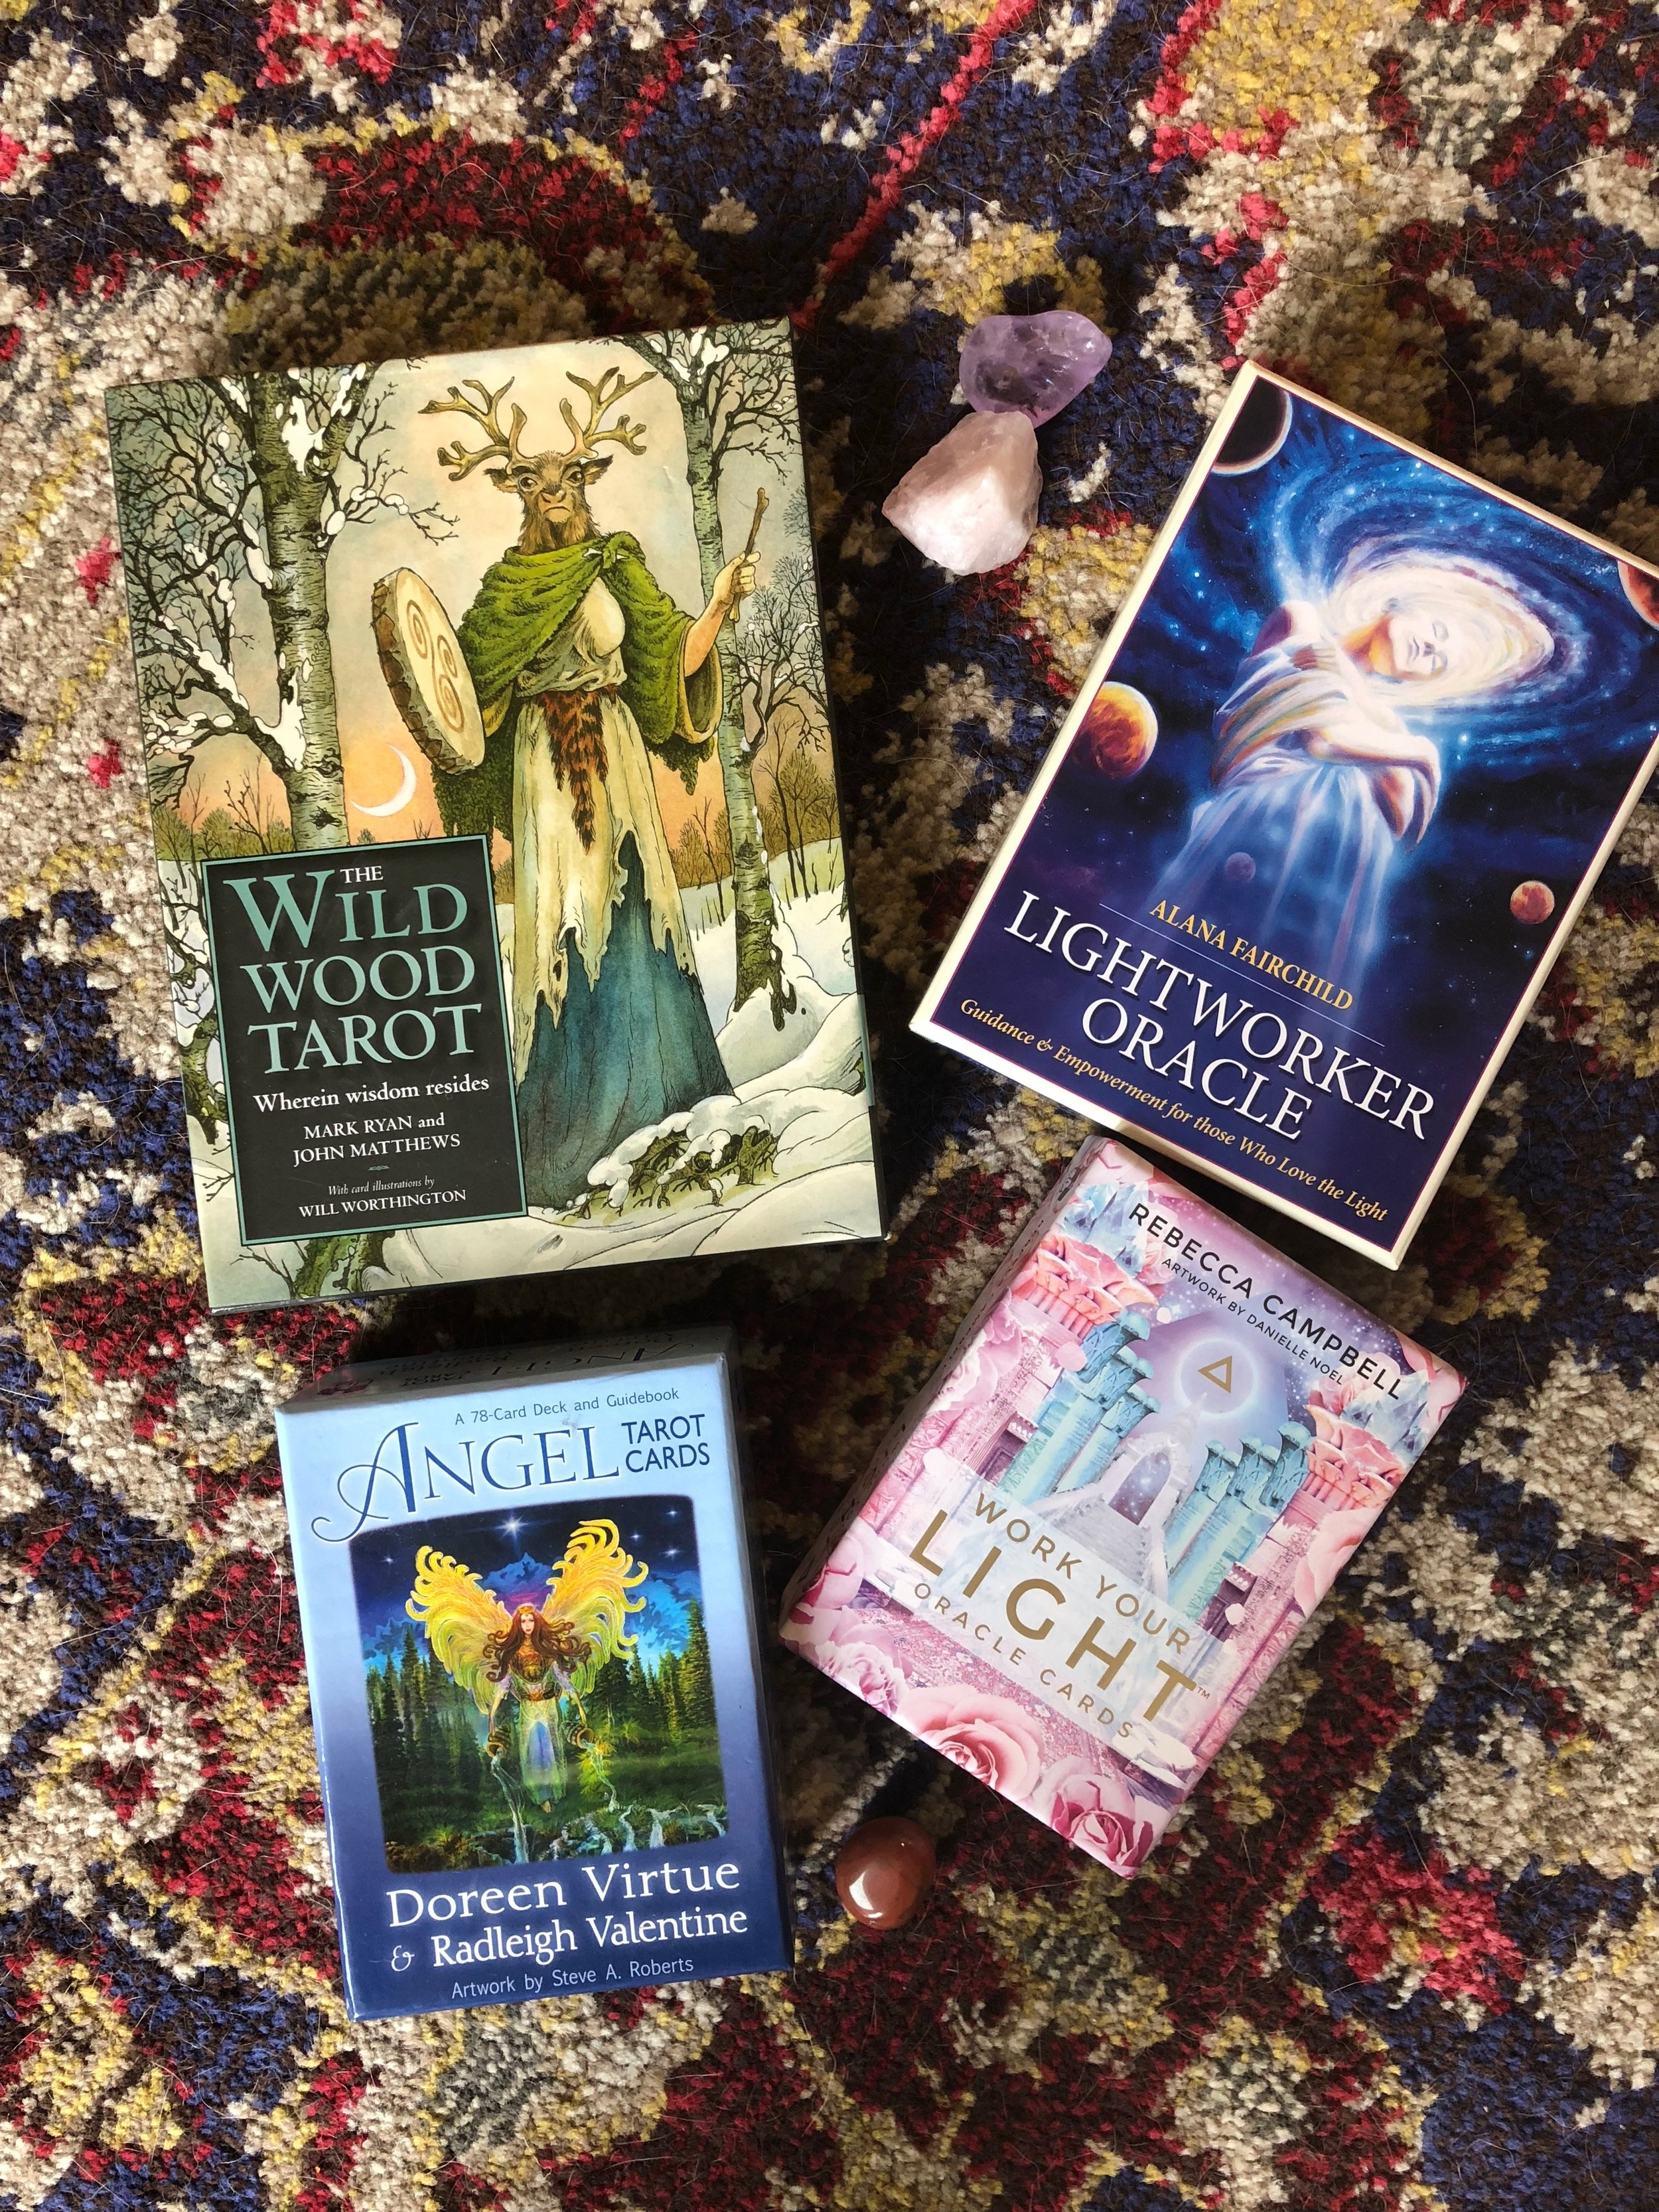 MY CARDS - I will intuitively ask + be guided to use the best deck for you.